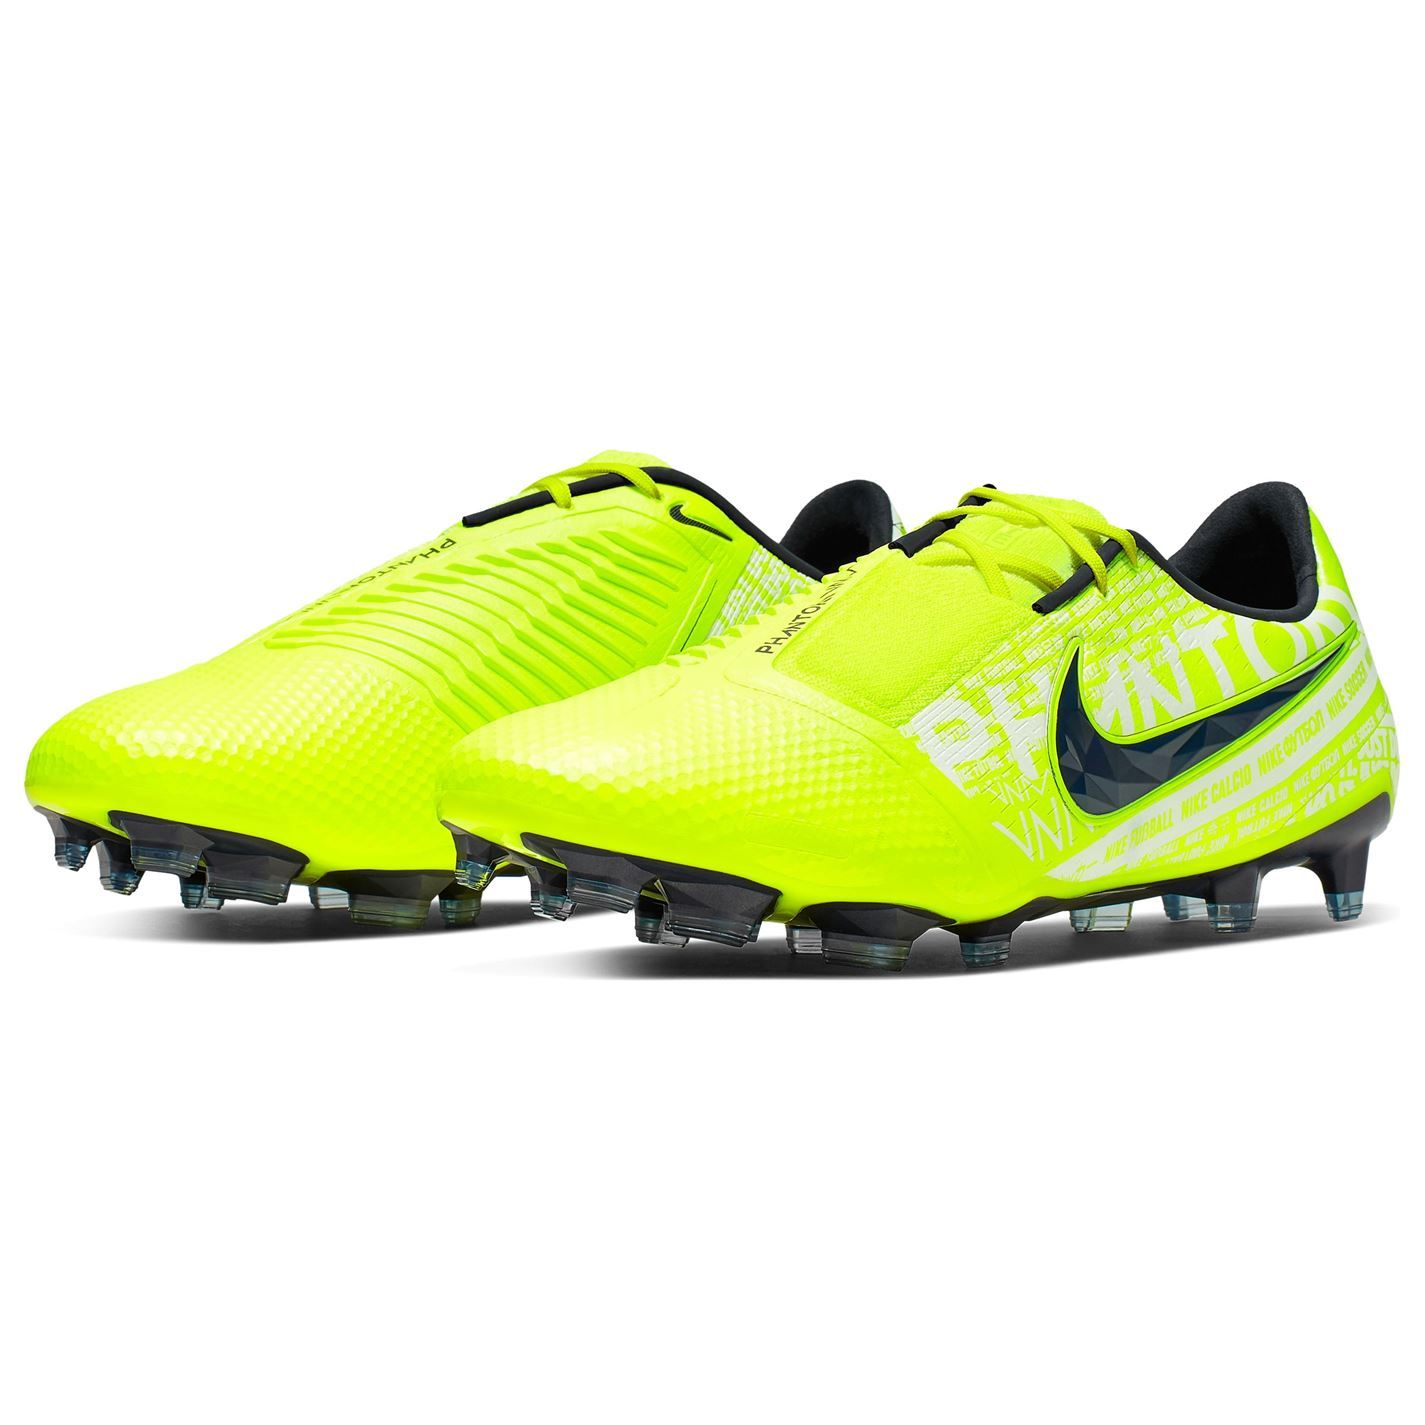 Nike-Phantom-Venom-Elite-Homme-FG-Firm-Ground-Chaussures-De-Football-Chaussures-de-foot-crampons miniature 19